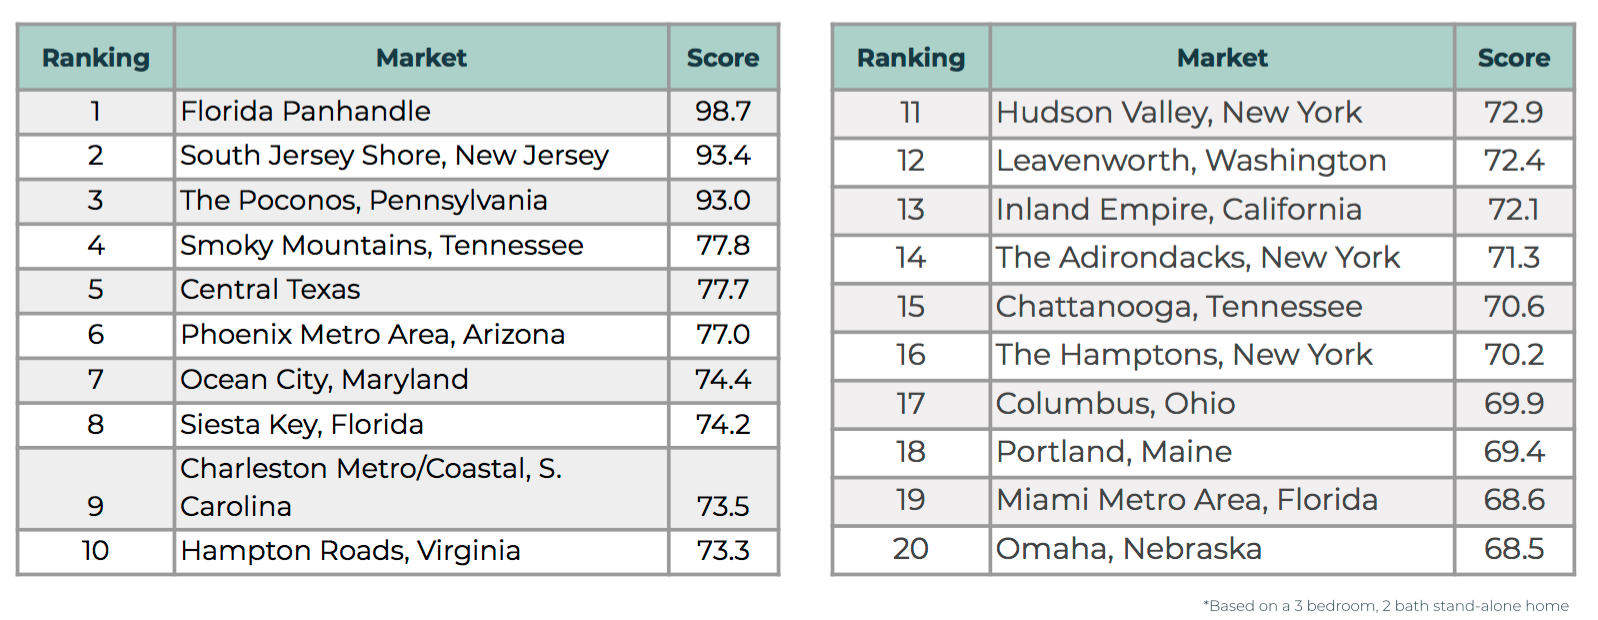 table ranking vacation home locations. Visit source link at the end of this article for more information.